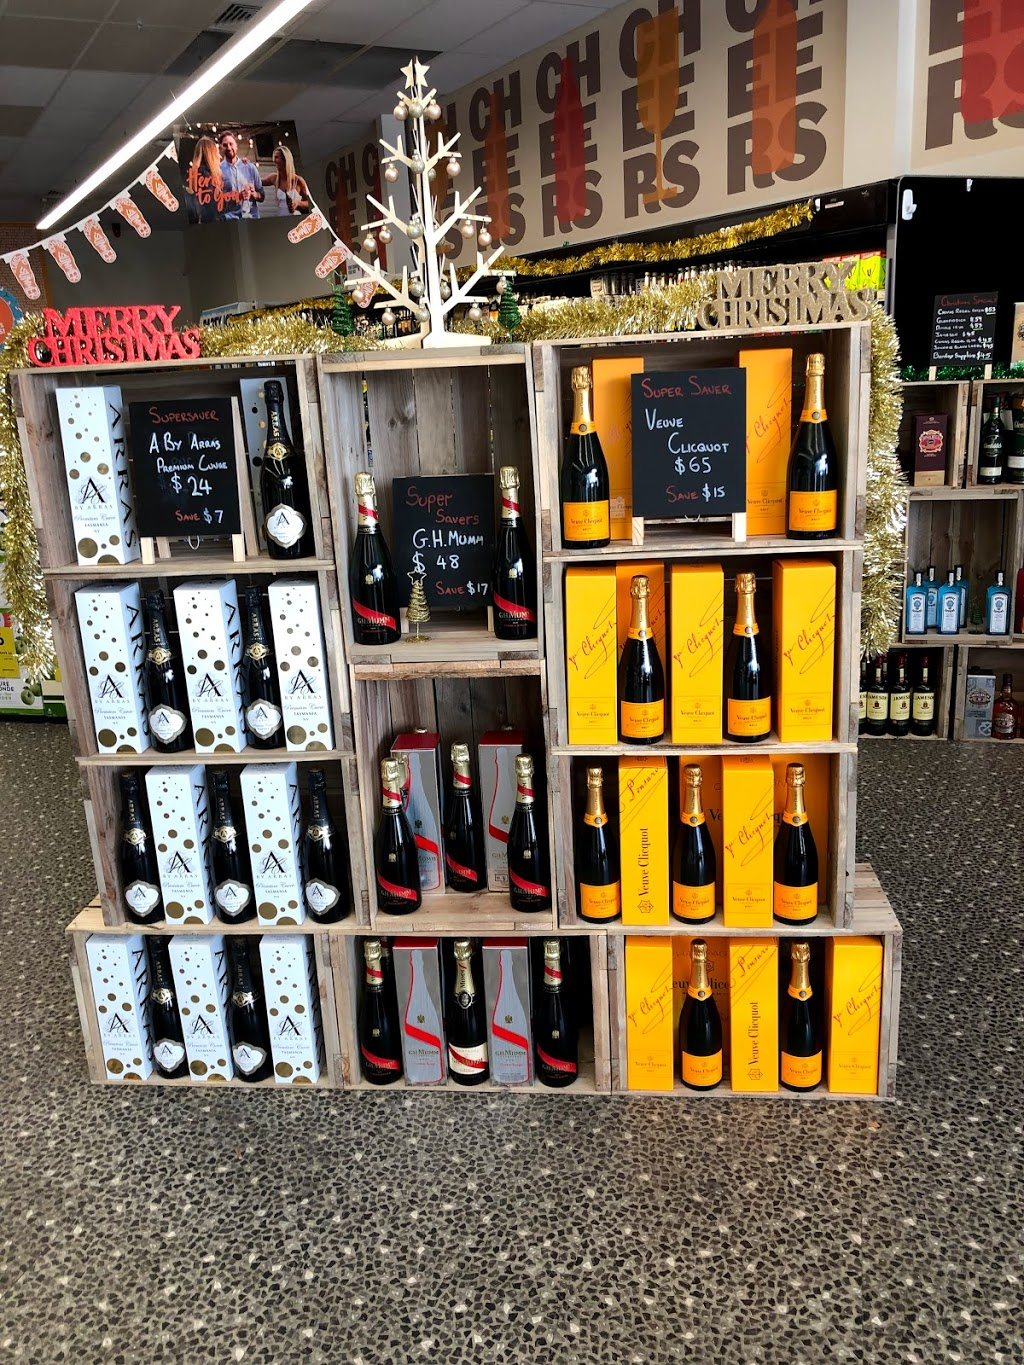 BWS Colac (Hesse St) | store | 112-116 Bromfield St, Colac VIC 3250, Australia | 0352313746 OR +61 3 5231 3746